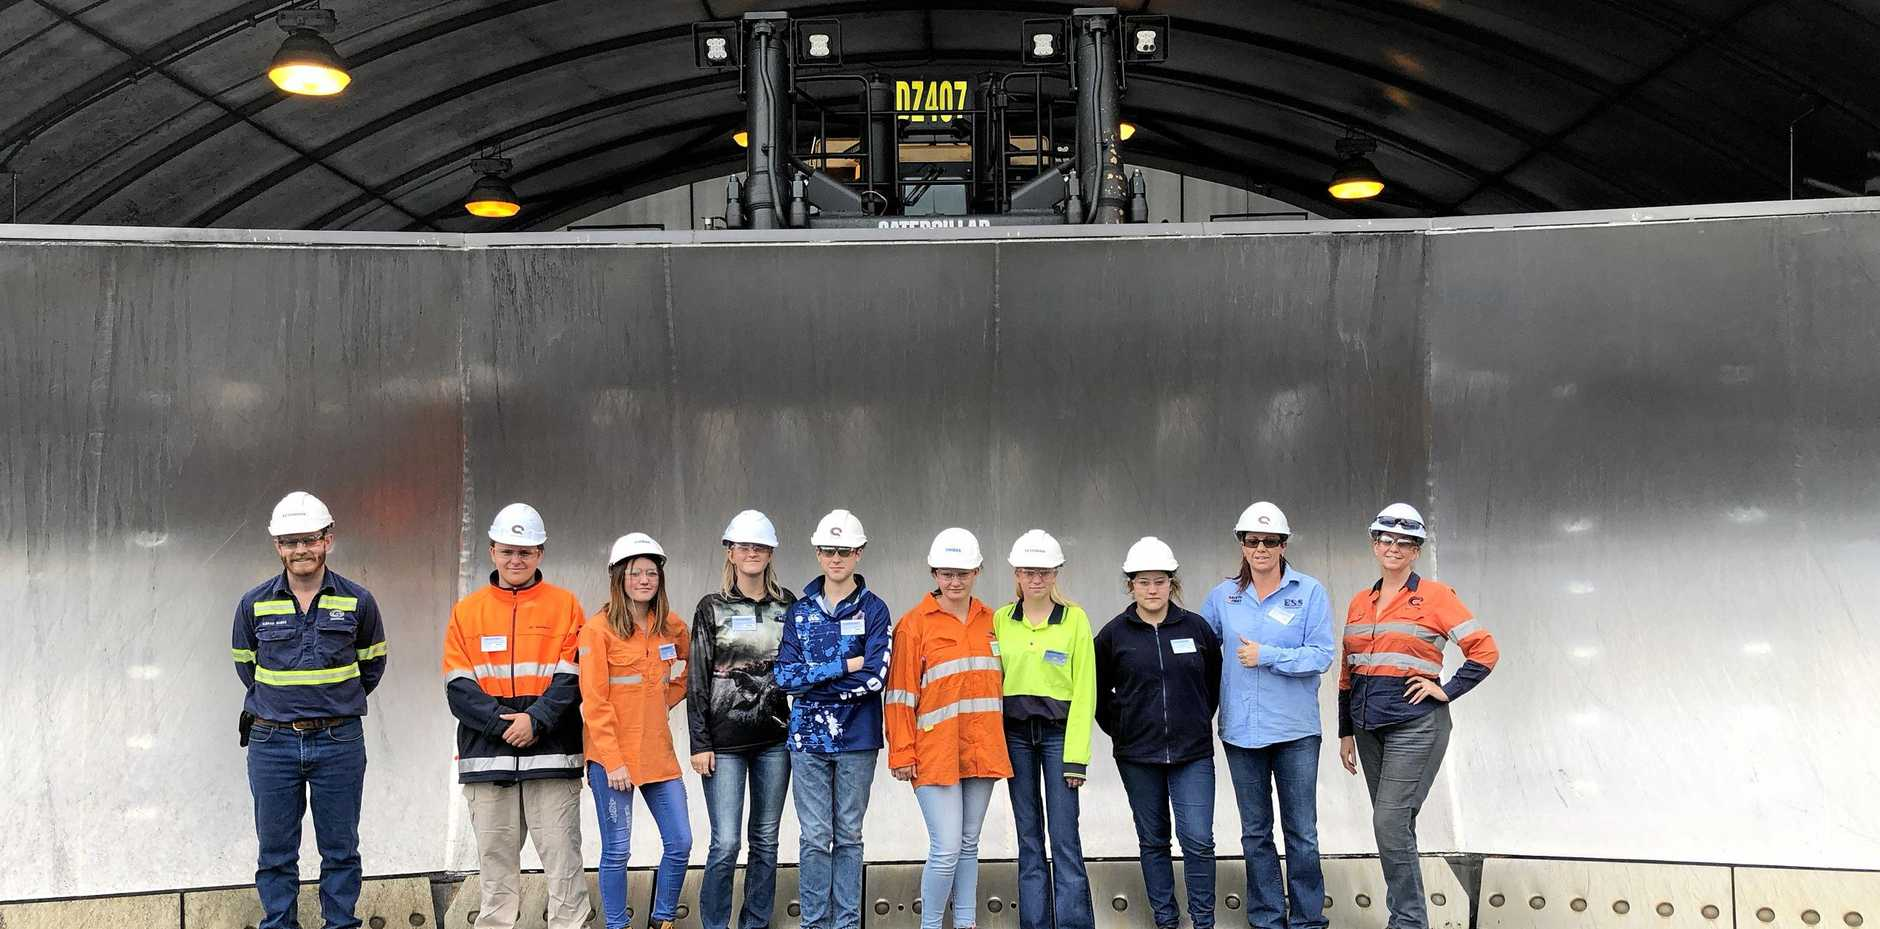 BACK AGAIN: Last year's Life Skills Programs participants during a field trip to Sonoma Mine. Pictured: Will Birkett, Kristal Chapman, Sharni Wallace, Jarryd May, Kia Altmann, Courtney Sanim, Brittany McGregor, Heather Brown (Facilitator) and Joanne Byrne (Q Coal).